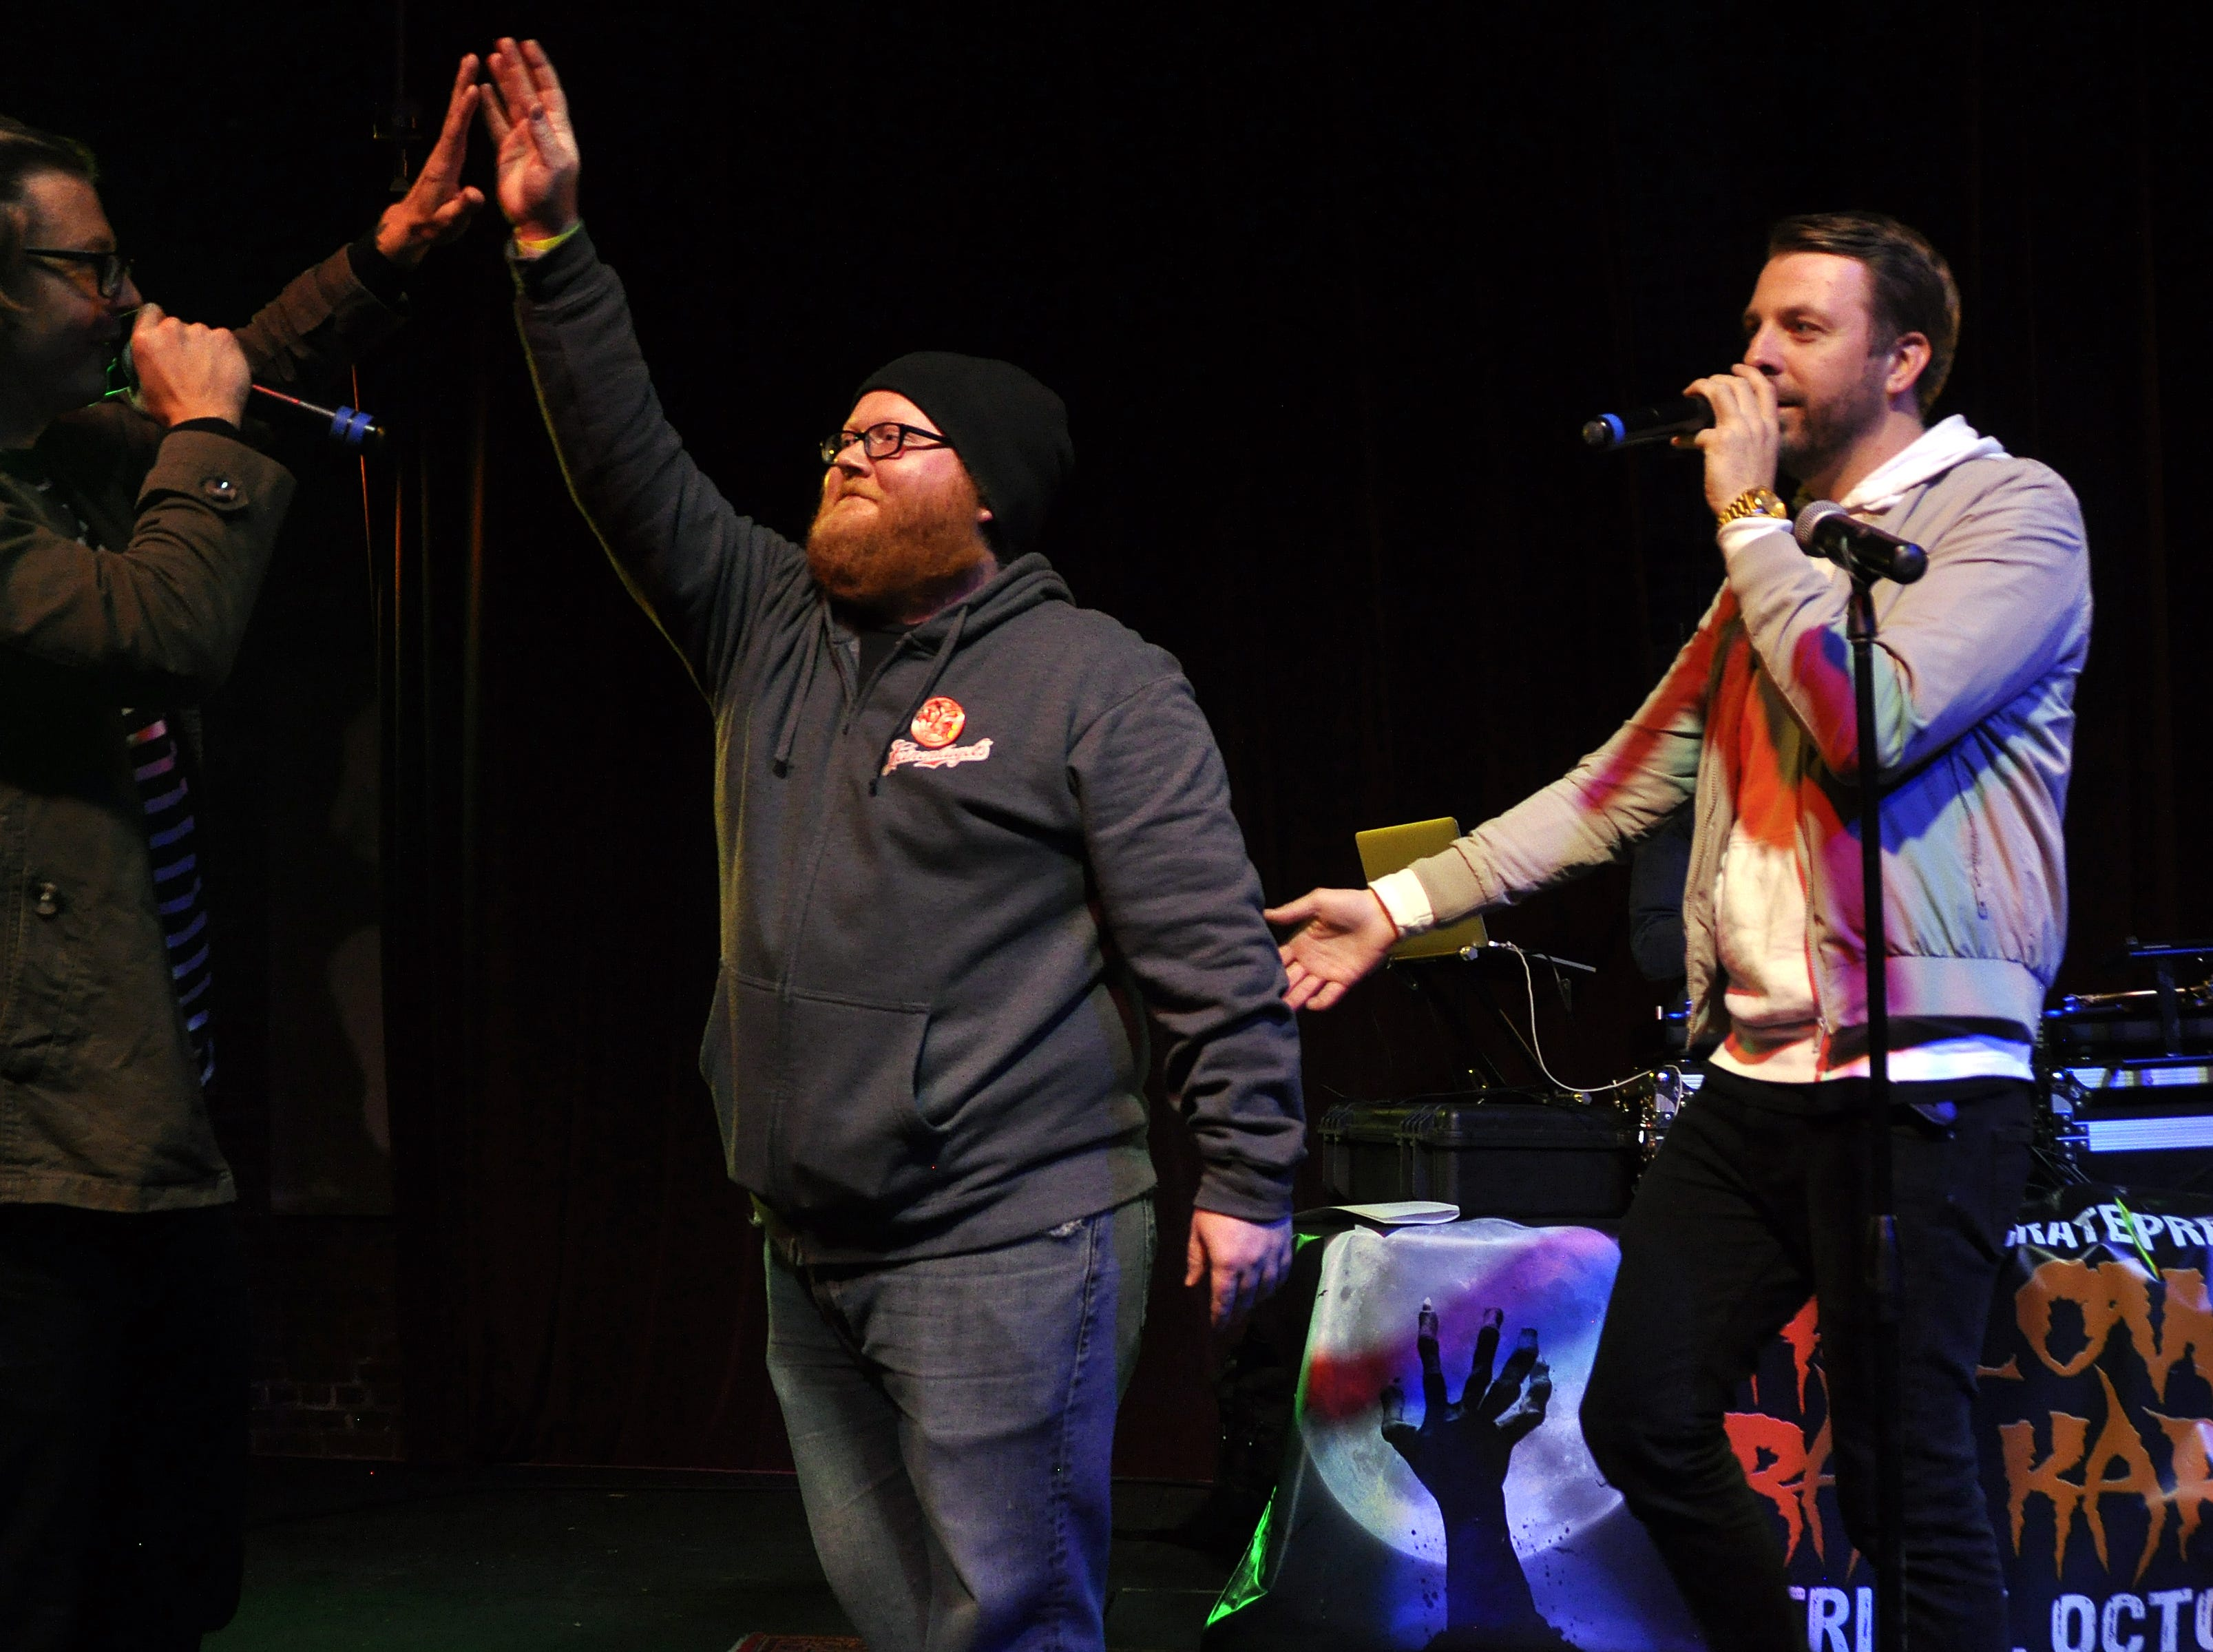 Tom Ottoson, center, kicked off the 10th Annual Halloween Rap Karaoke show at Icon Lounge Friday night. The event is was created by the Sioux Falls band Soulcrate.